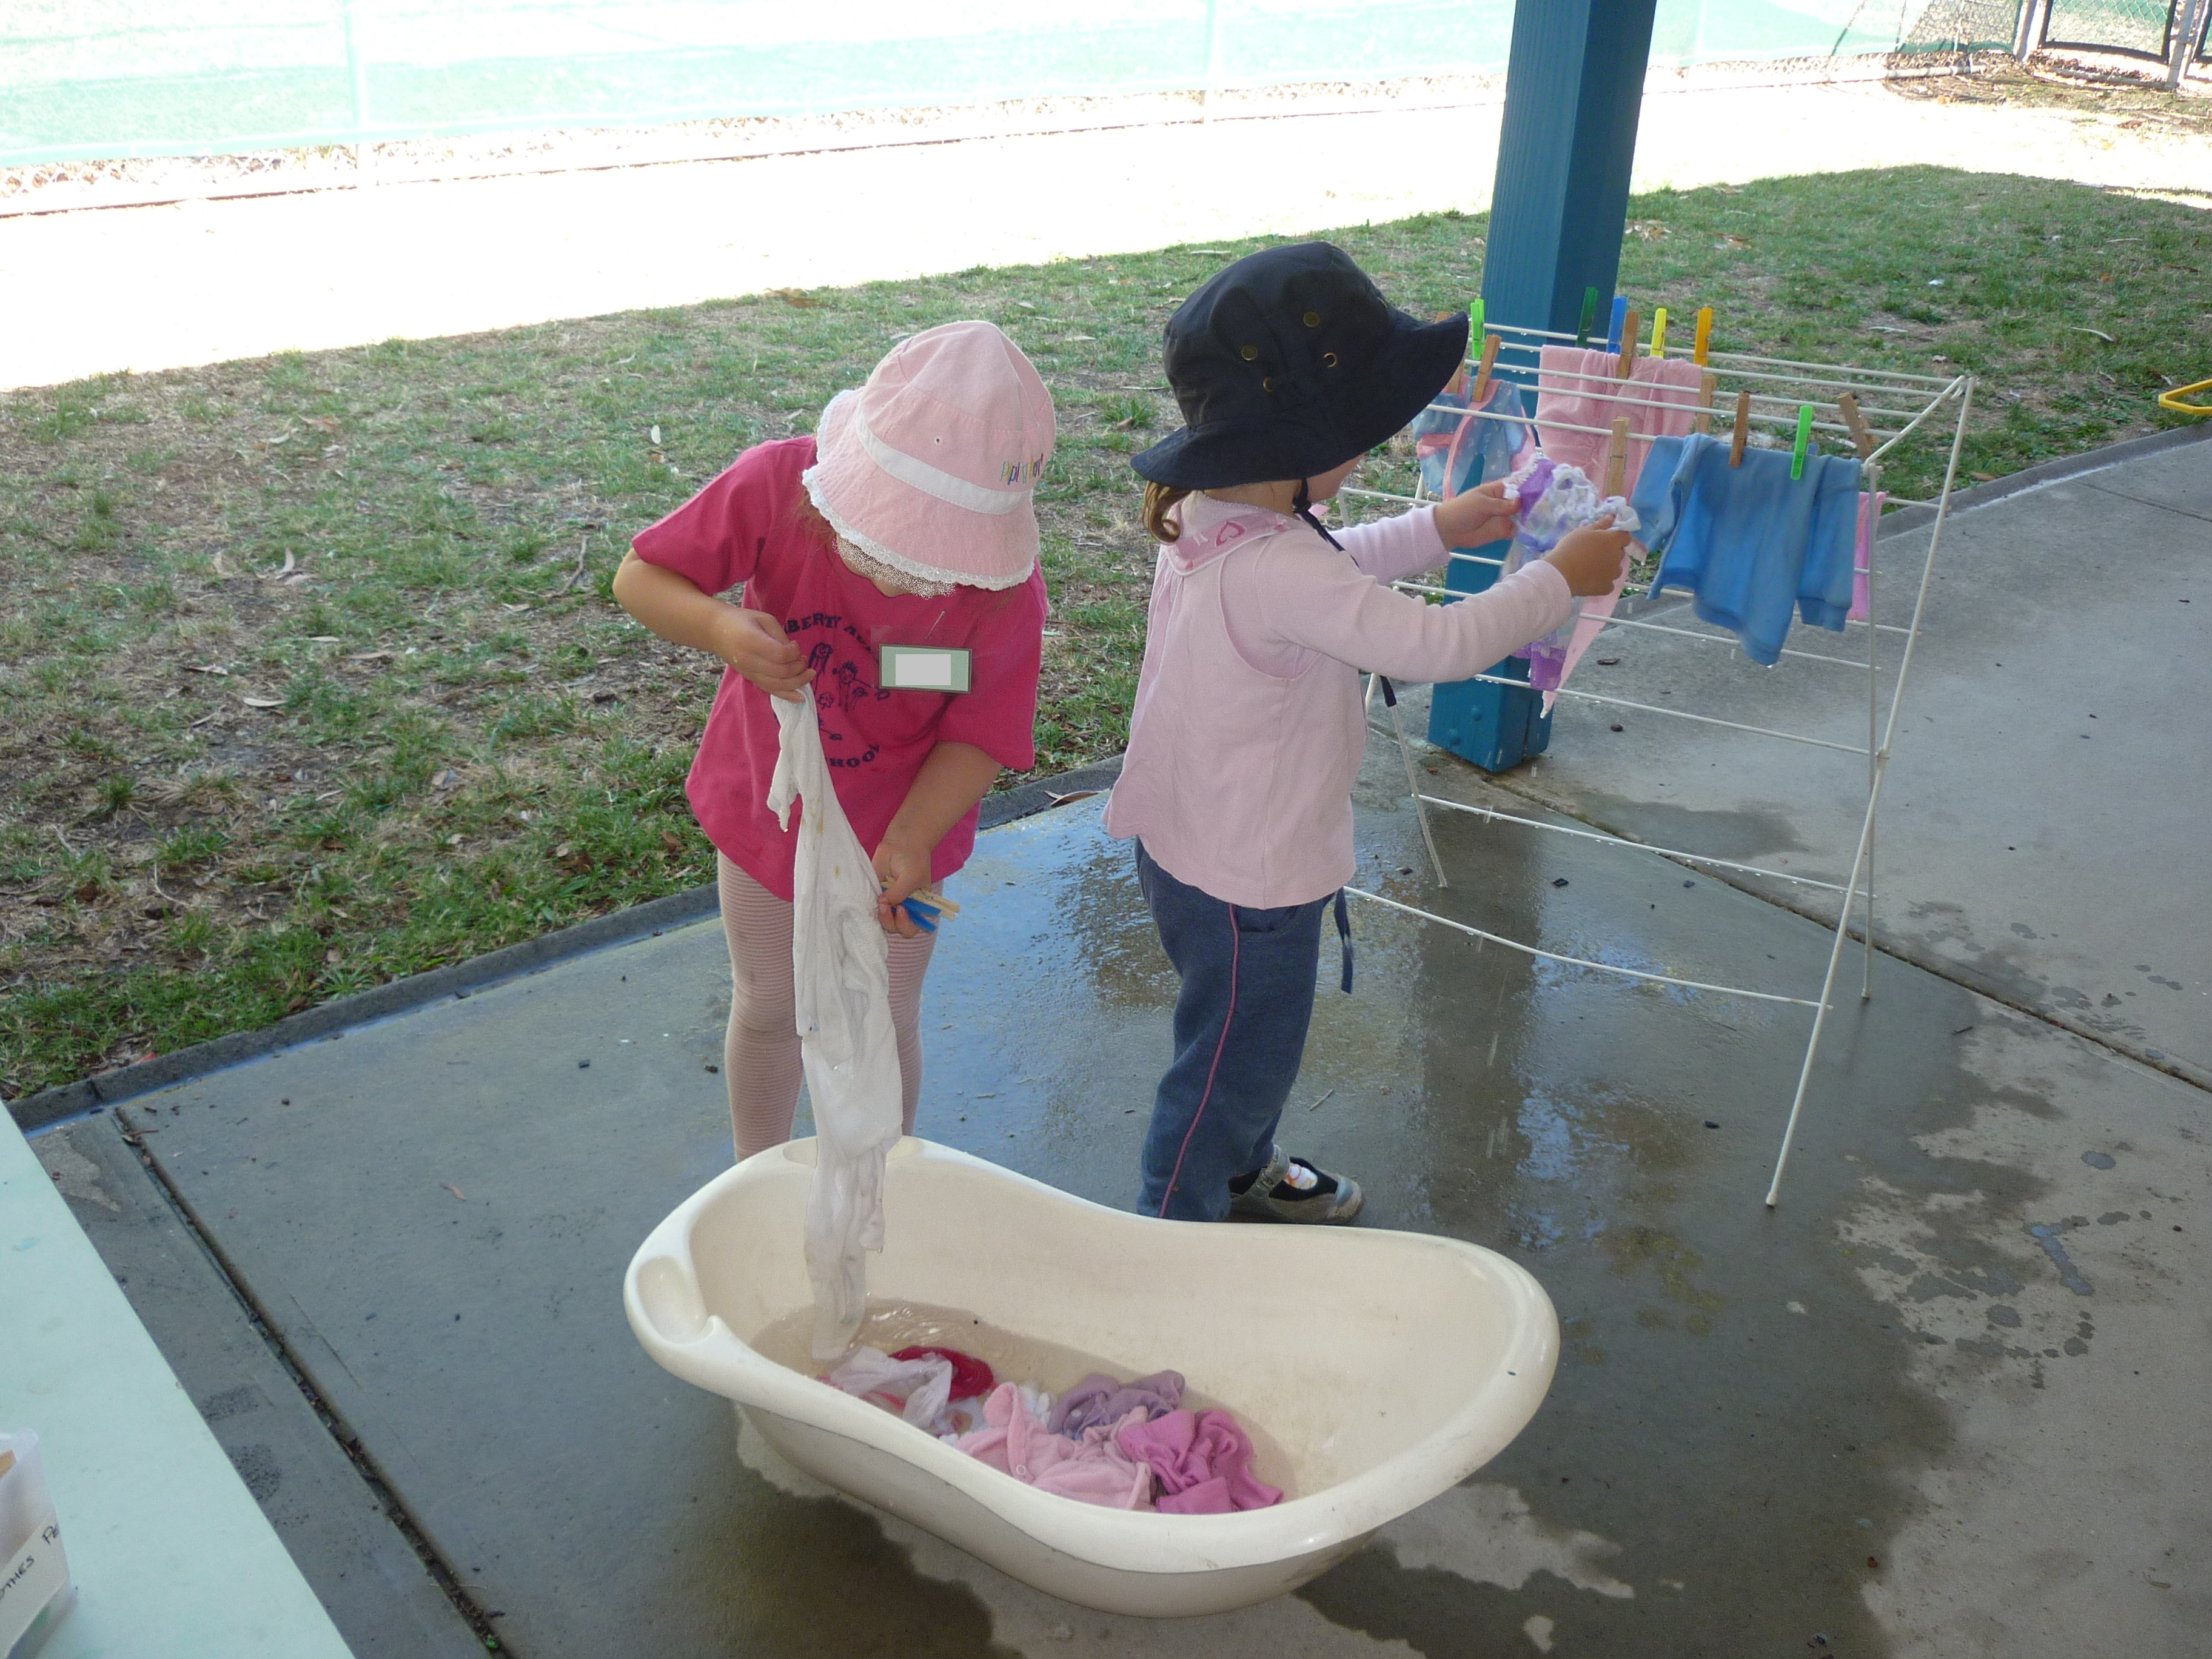 Washing the doll's clothes